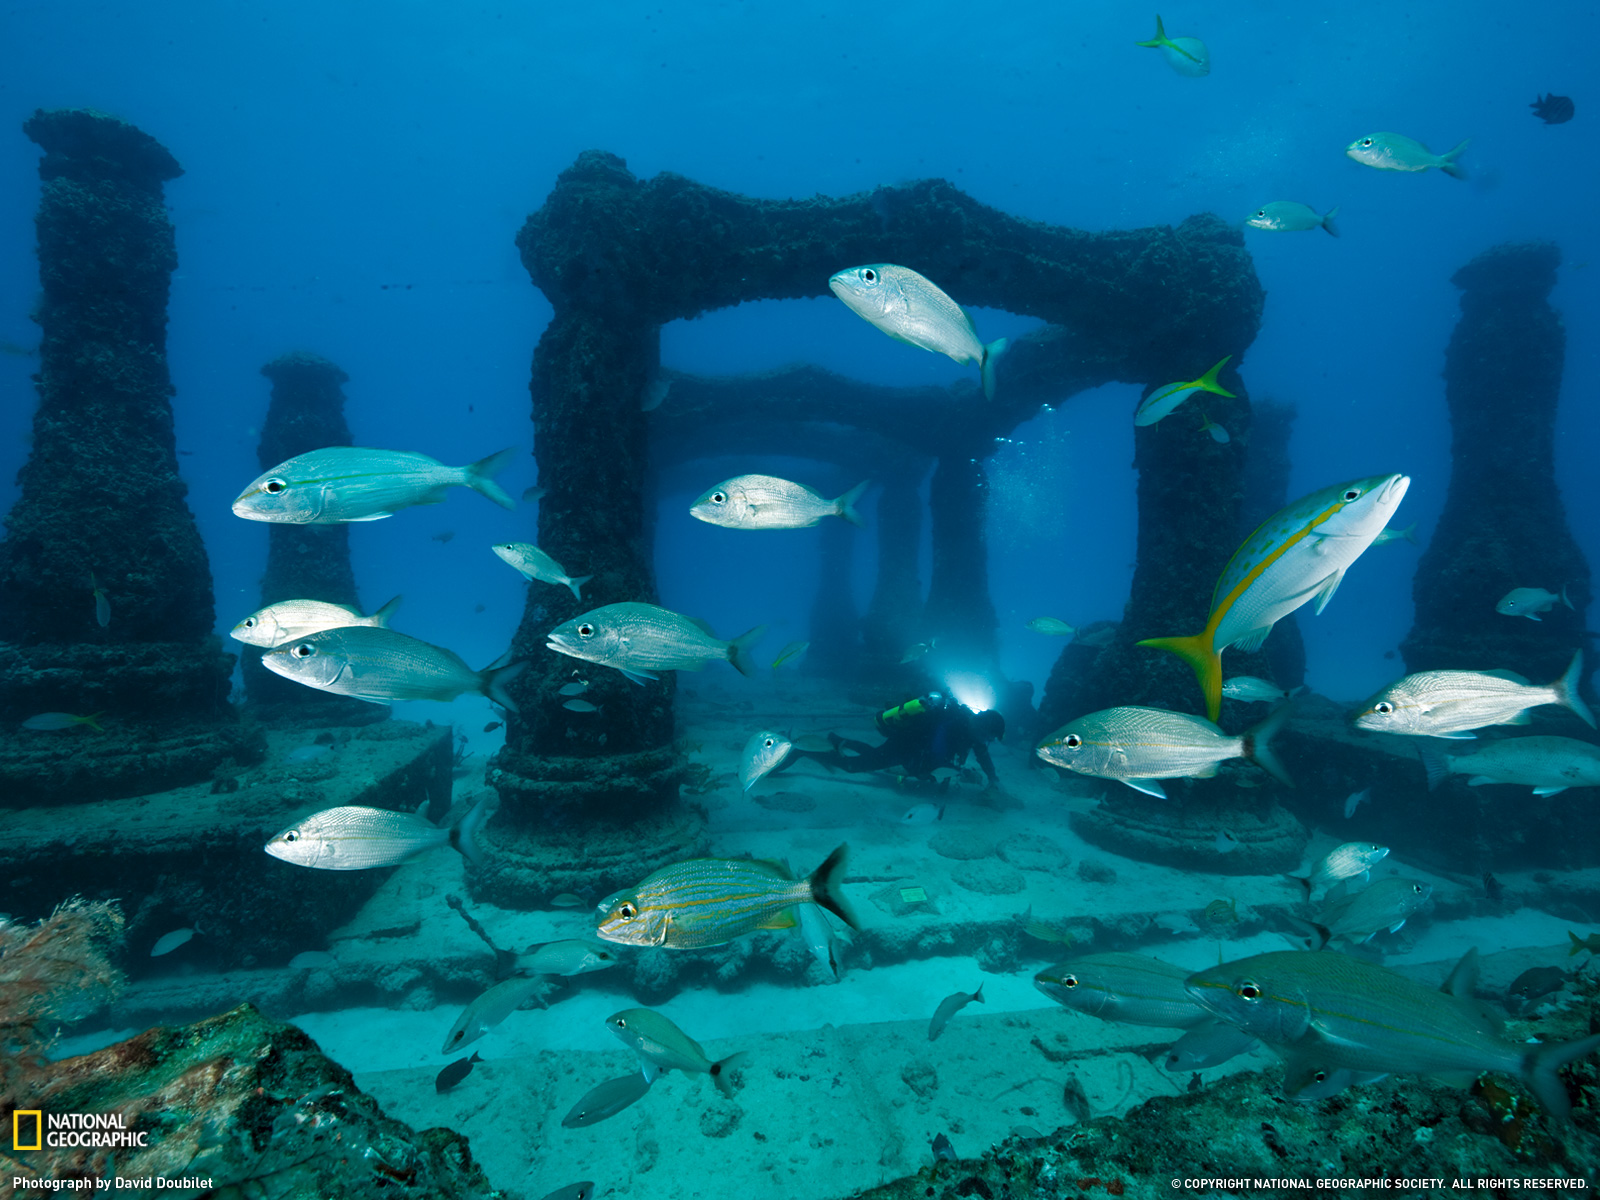 http://vignette1.wikia.nocookie.net/people-dont-have-to-be-anything-else/images/e/e3/Port_Royal_ruins_underwater.jpg